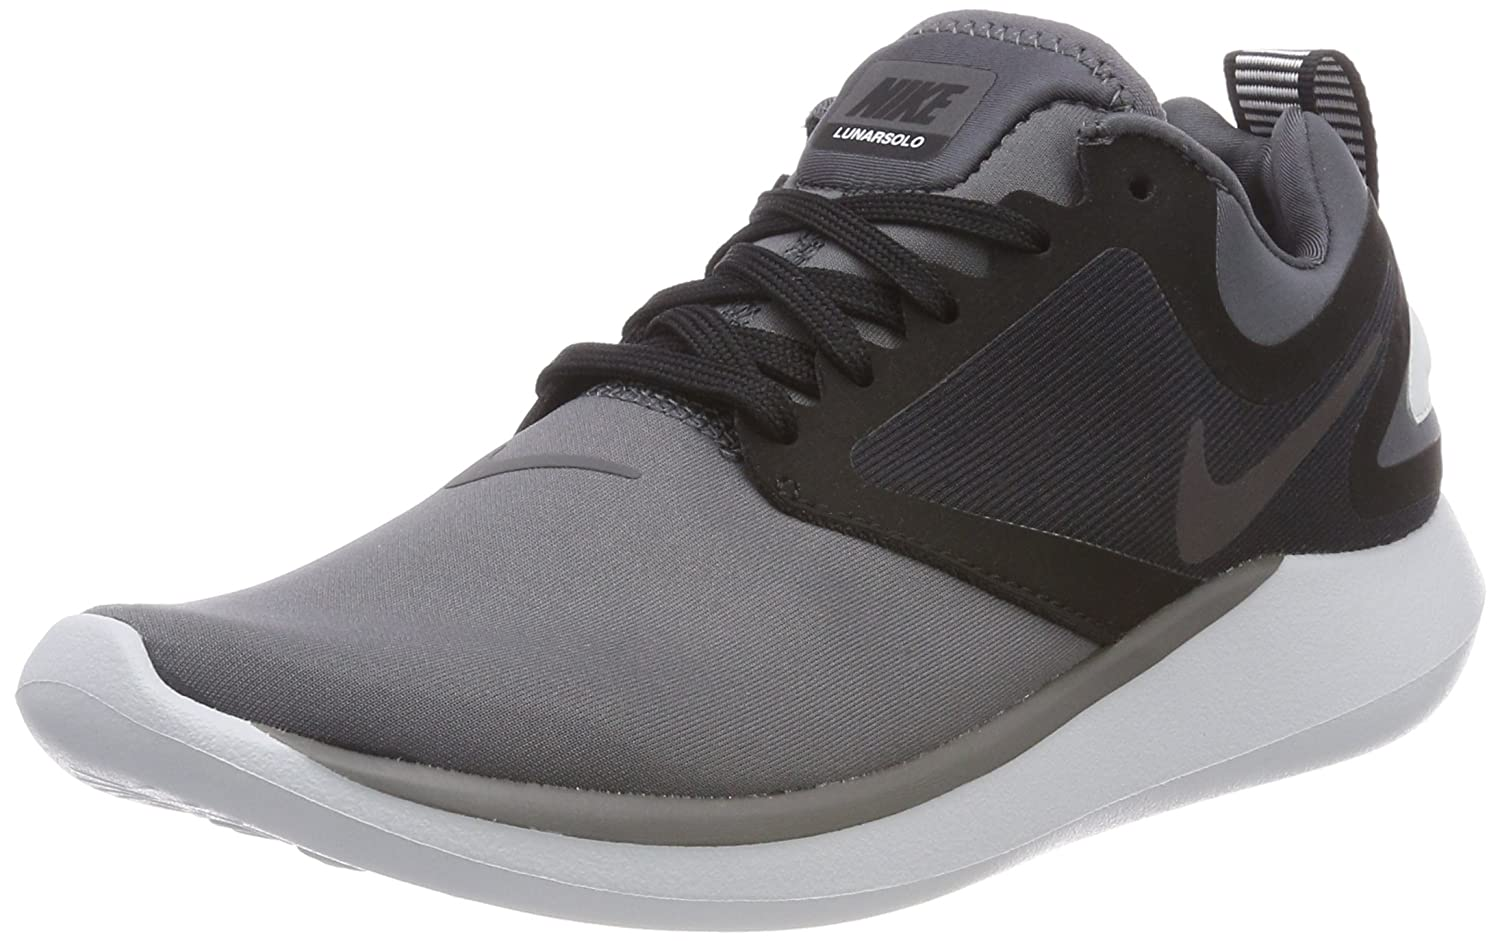 NIKE Women's Lunarsolo Running Shoes B072F83K1K 9 B(M) US|Dark Grey/Multi-color-black